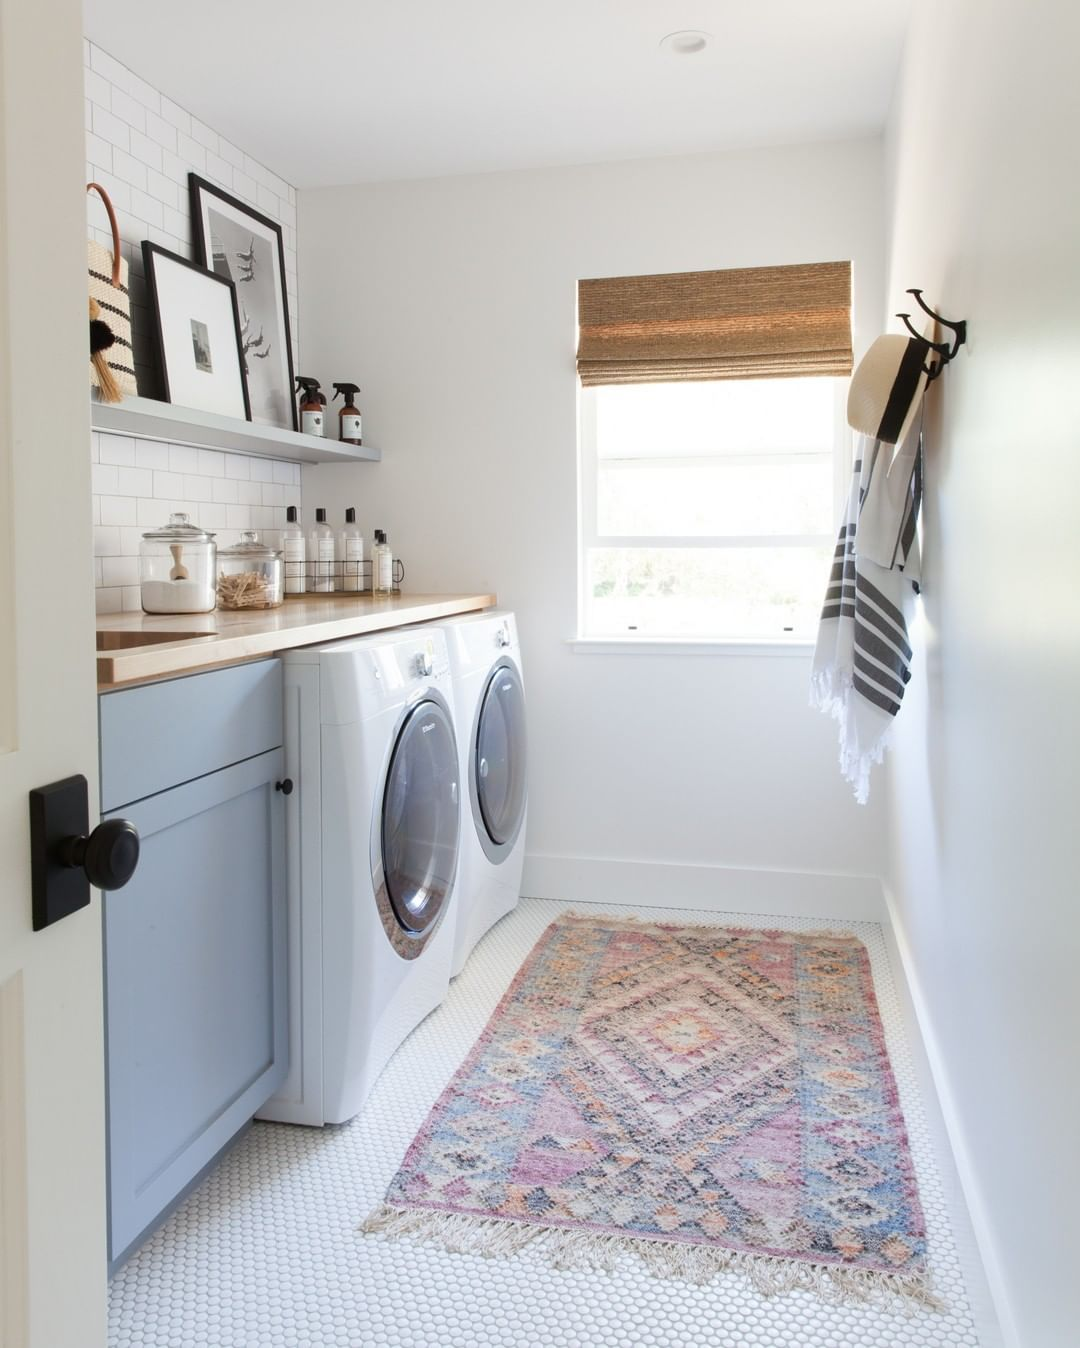 Mindy Gayer Design Co On Instagram Rise And Shine We Love This Modern Laundry Room Fro In 2020 Blue Laundry Rooms Laundry Room Storage Shelves Modern Laundry Rooms